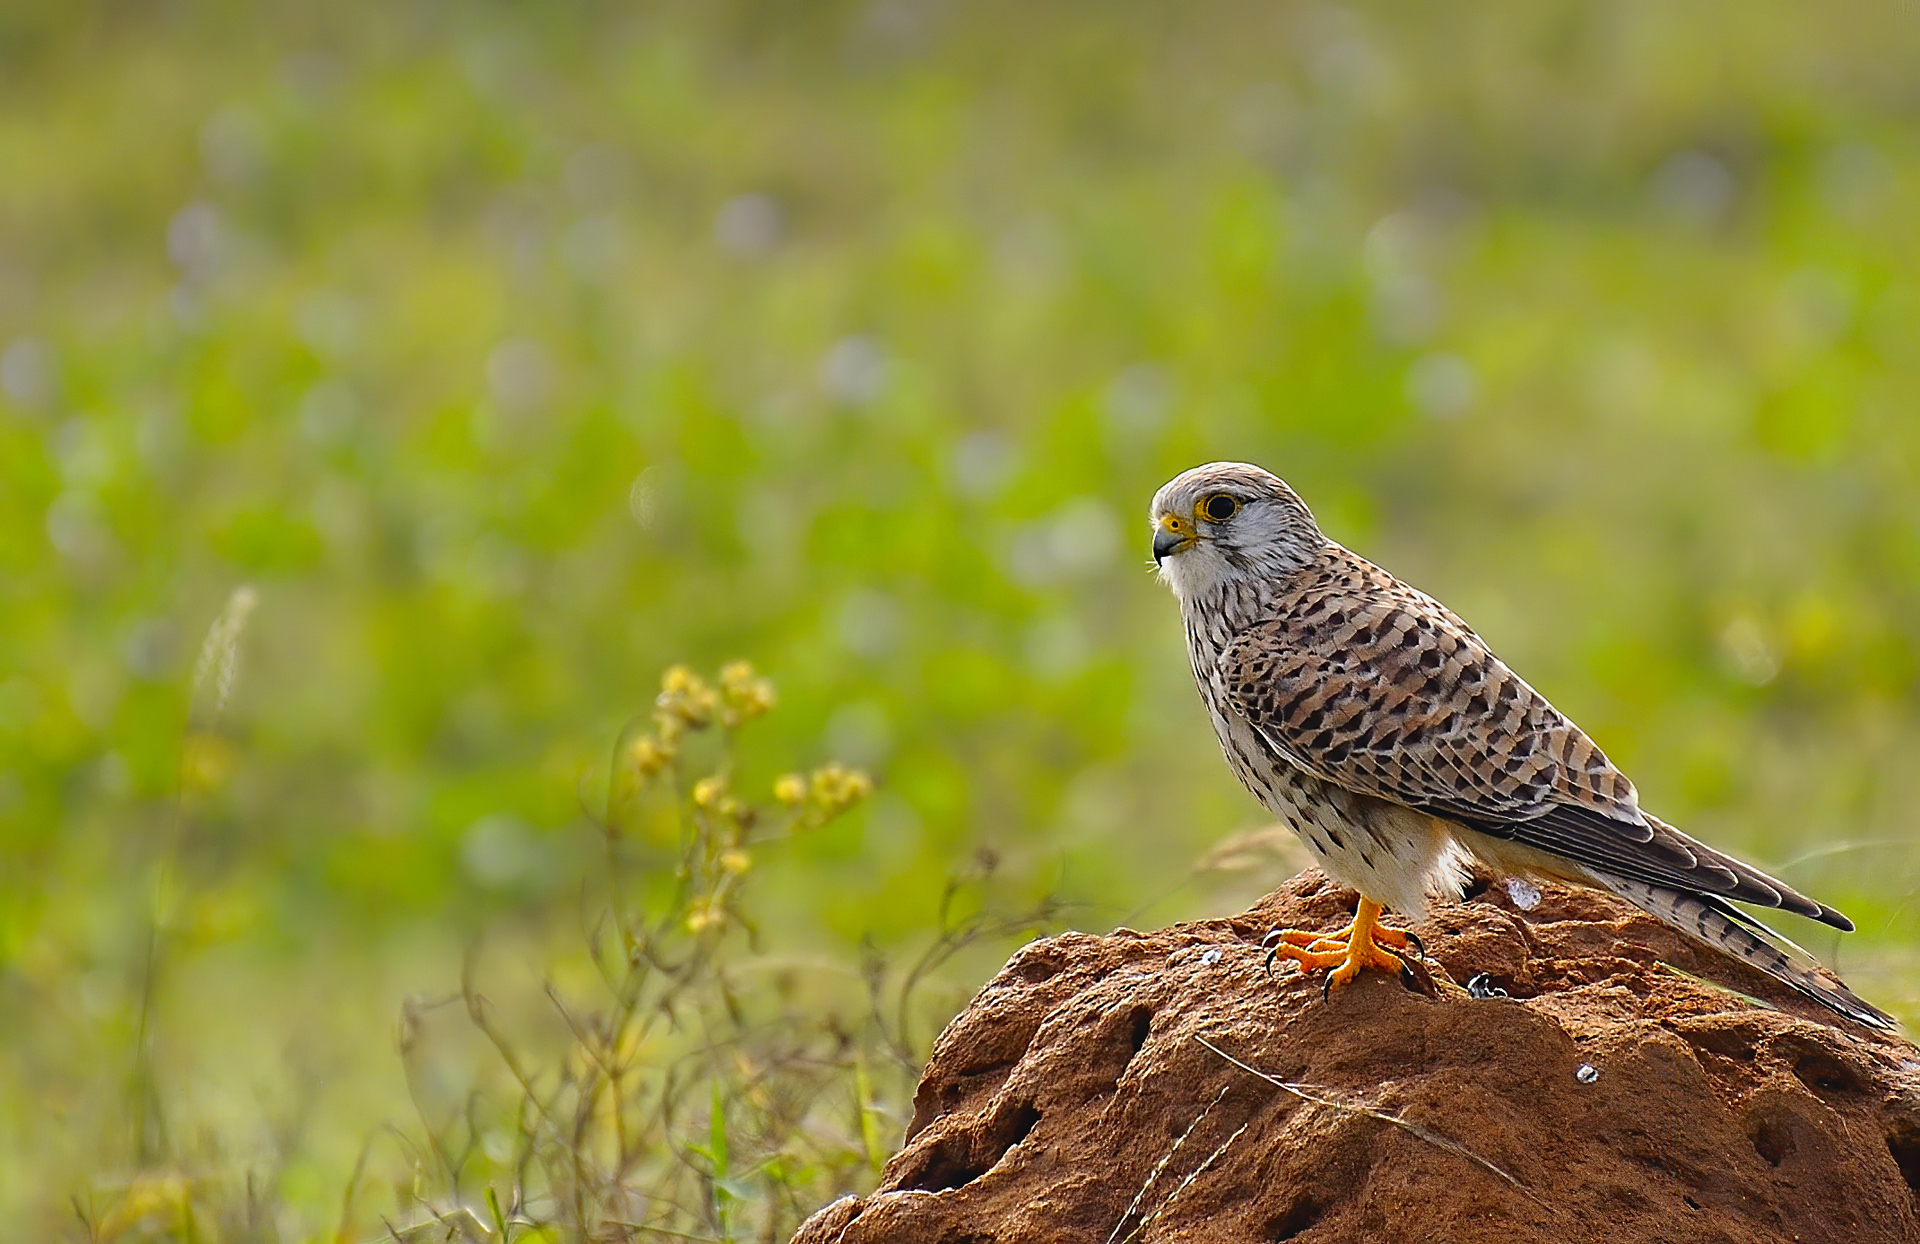 Birds 391 - Common Kestrel